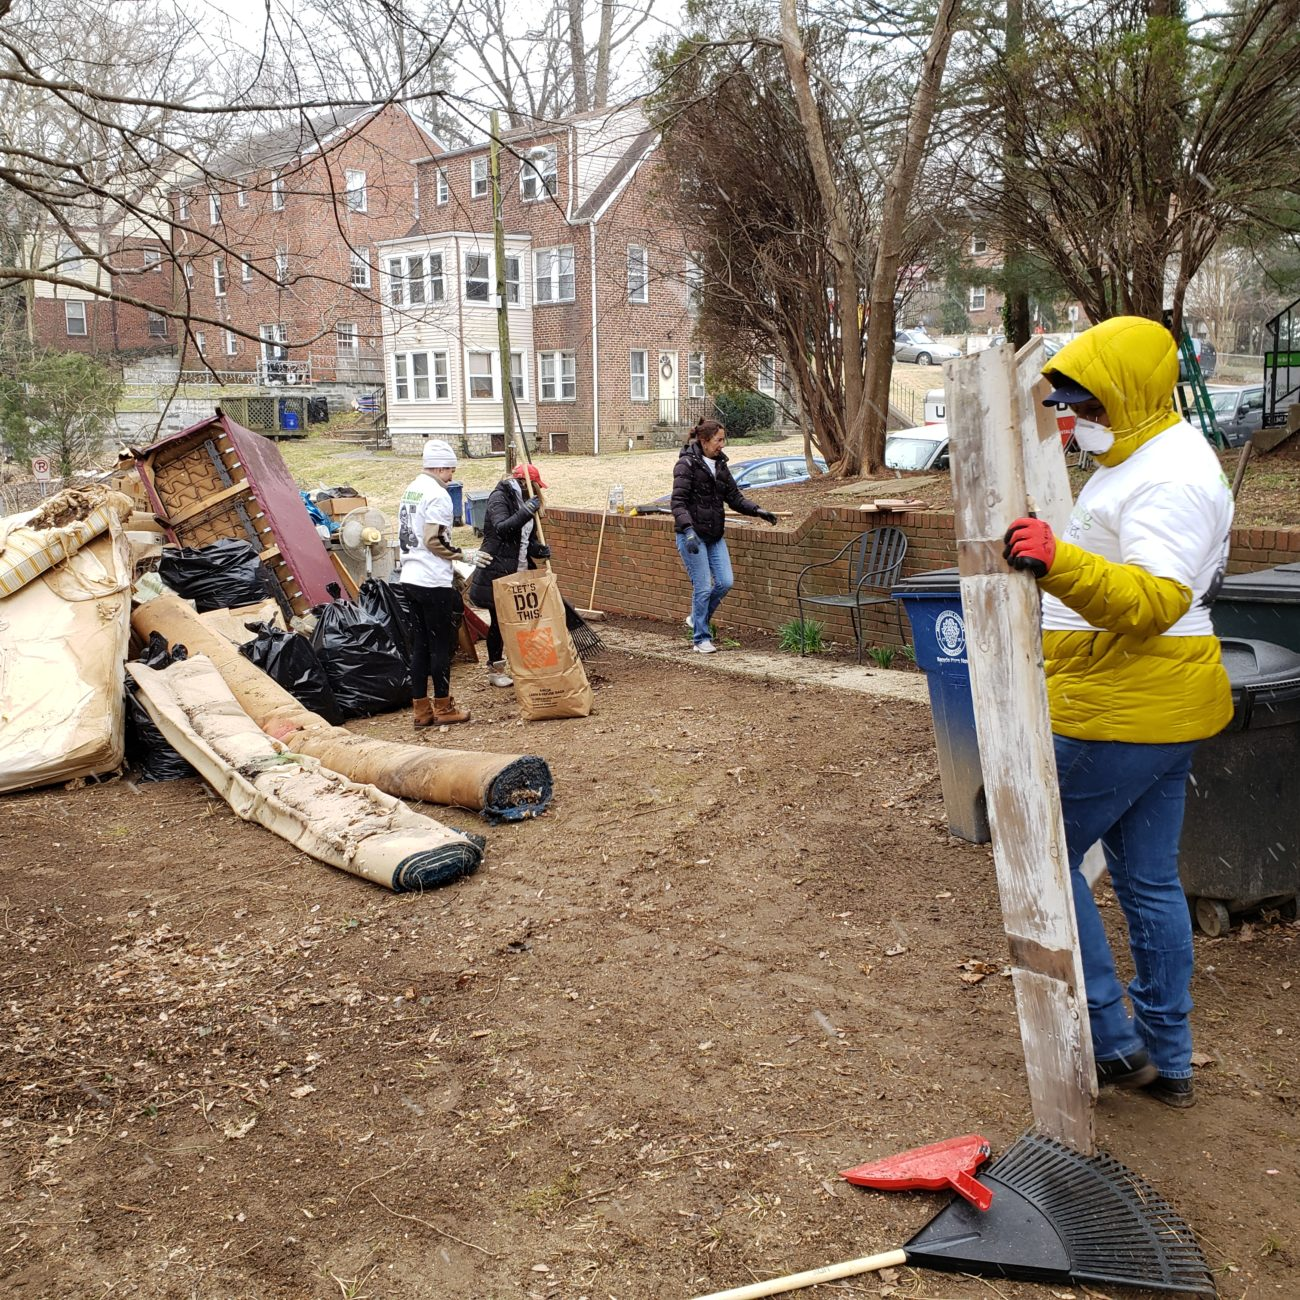 Women Construction Professionals Clearing Debris